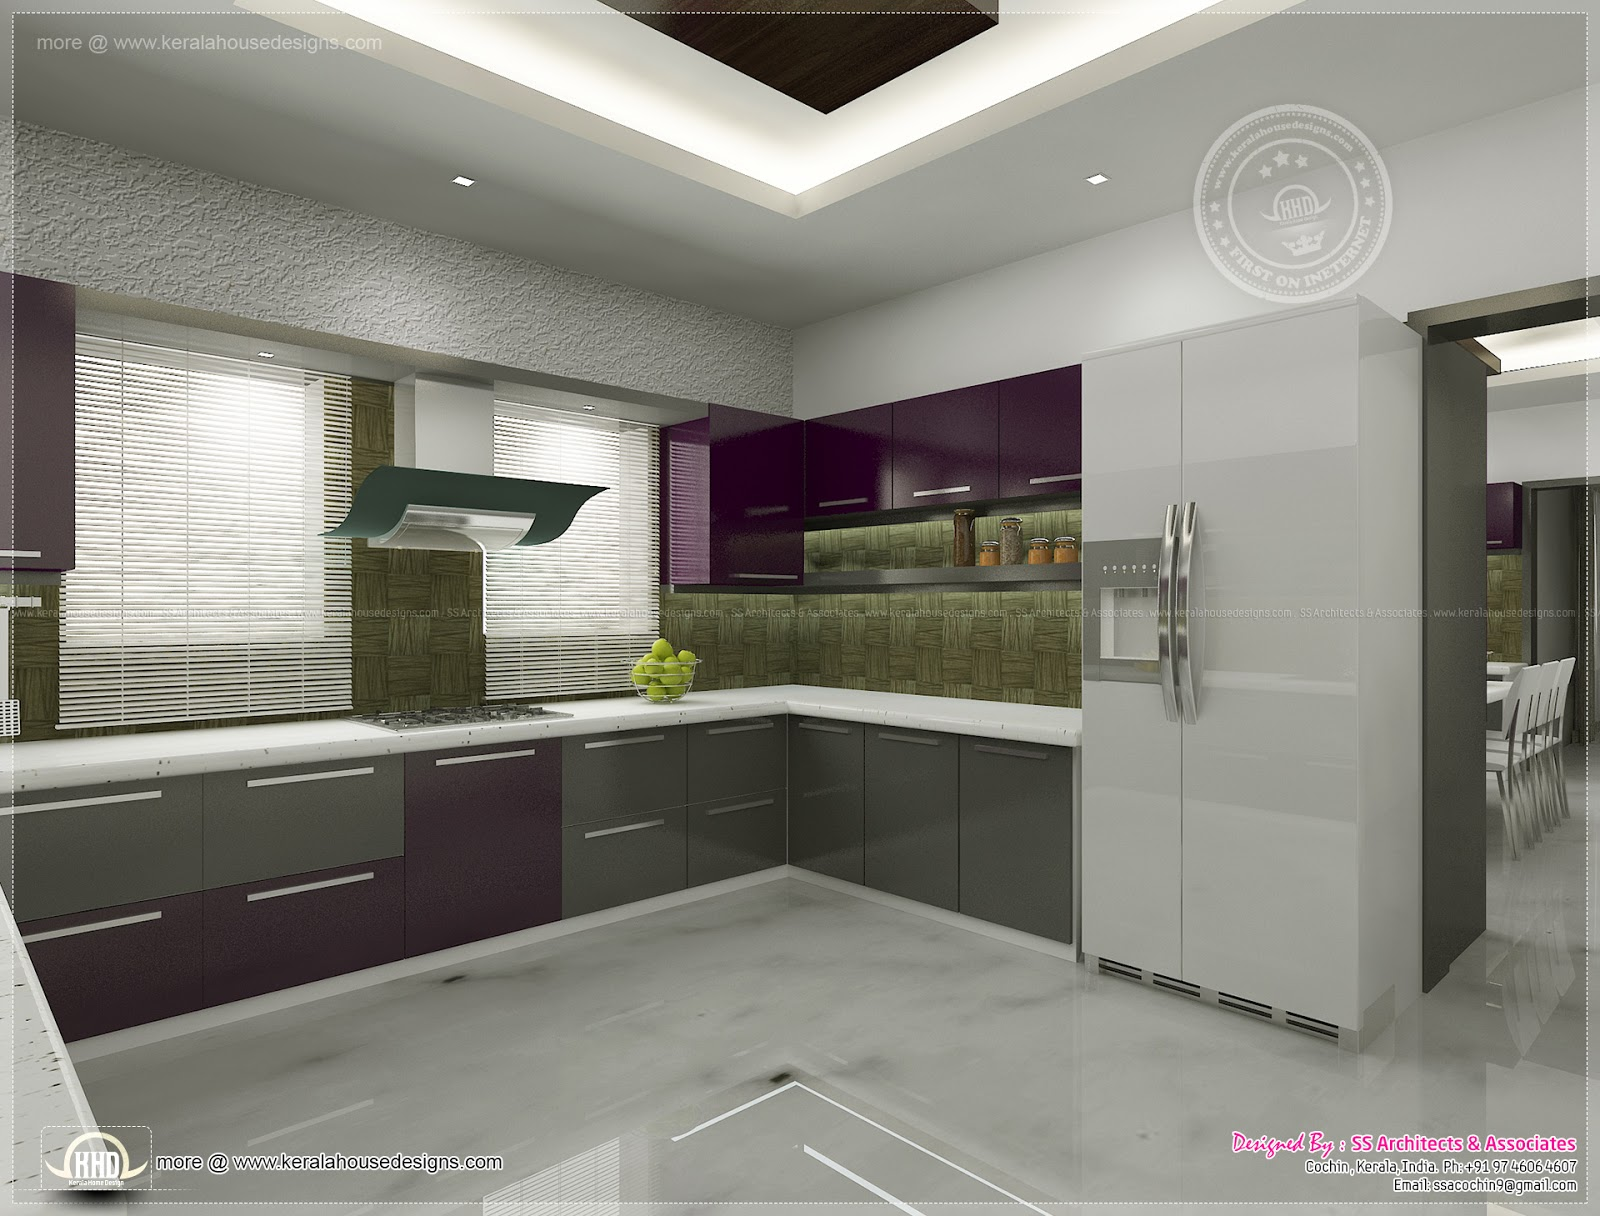 Kitchen interior views by ss architects cochin kerala for Indian house kitchen design